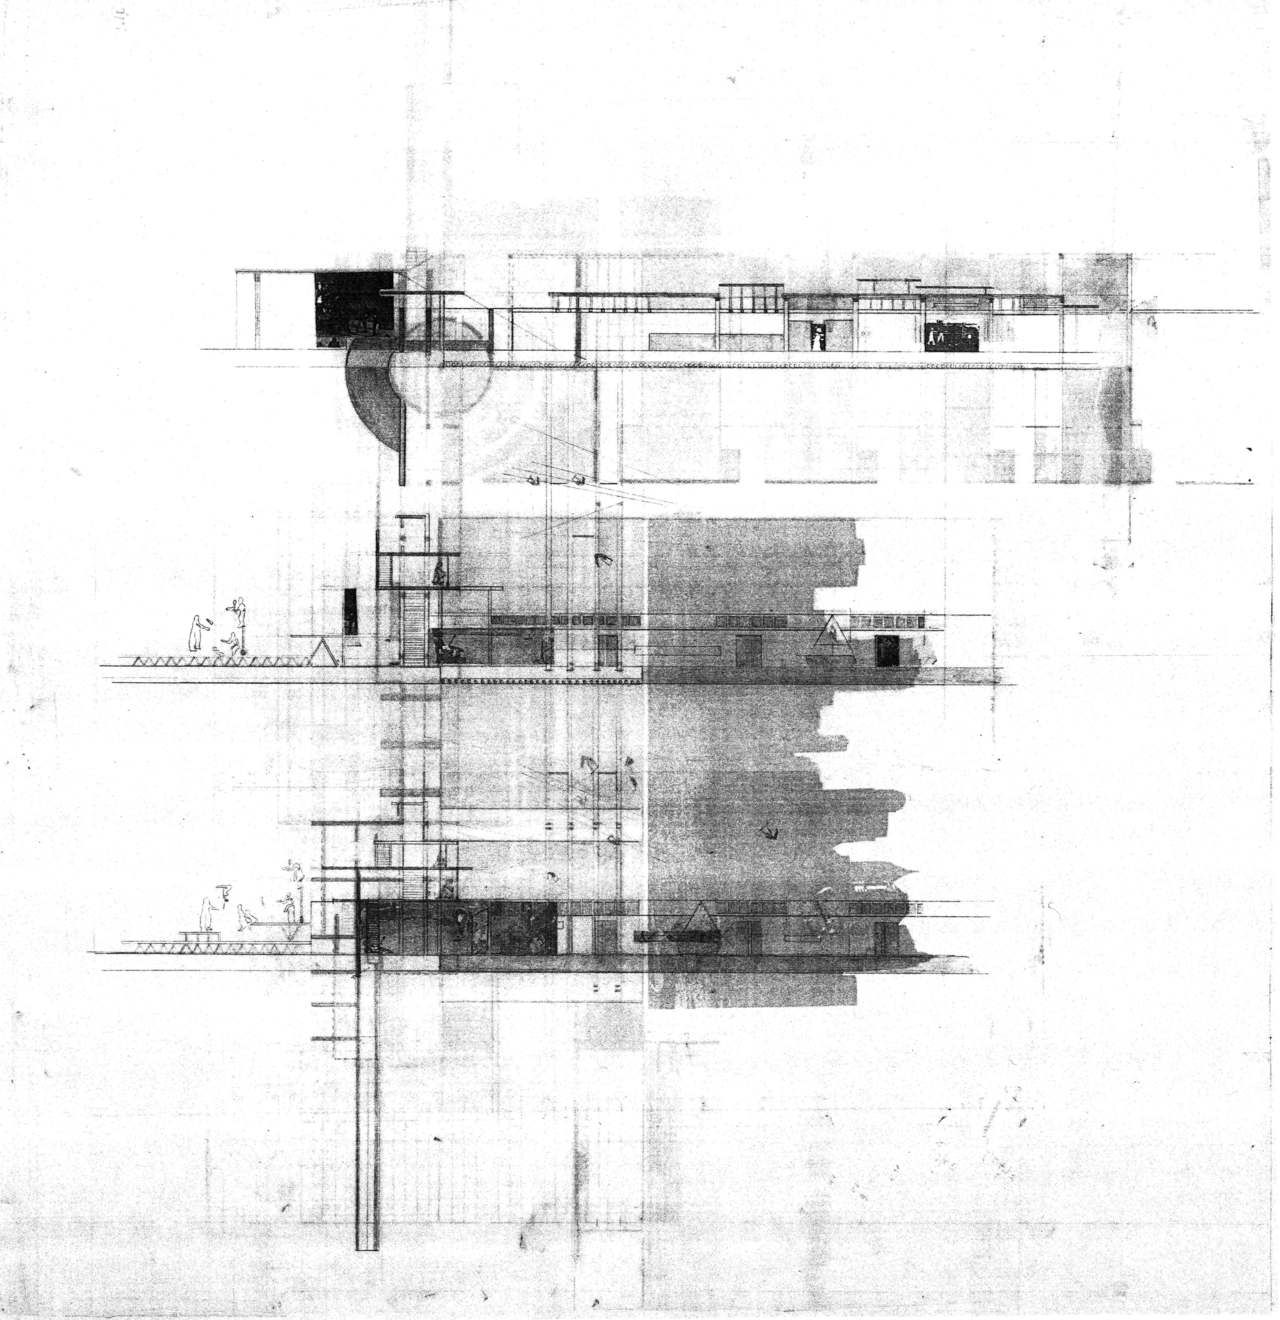 The Architectural Review S Folio Sketches Arquitectura Dibujos De Arquitectura Dibujo Arquitectonico